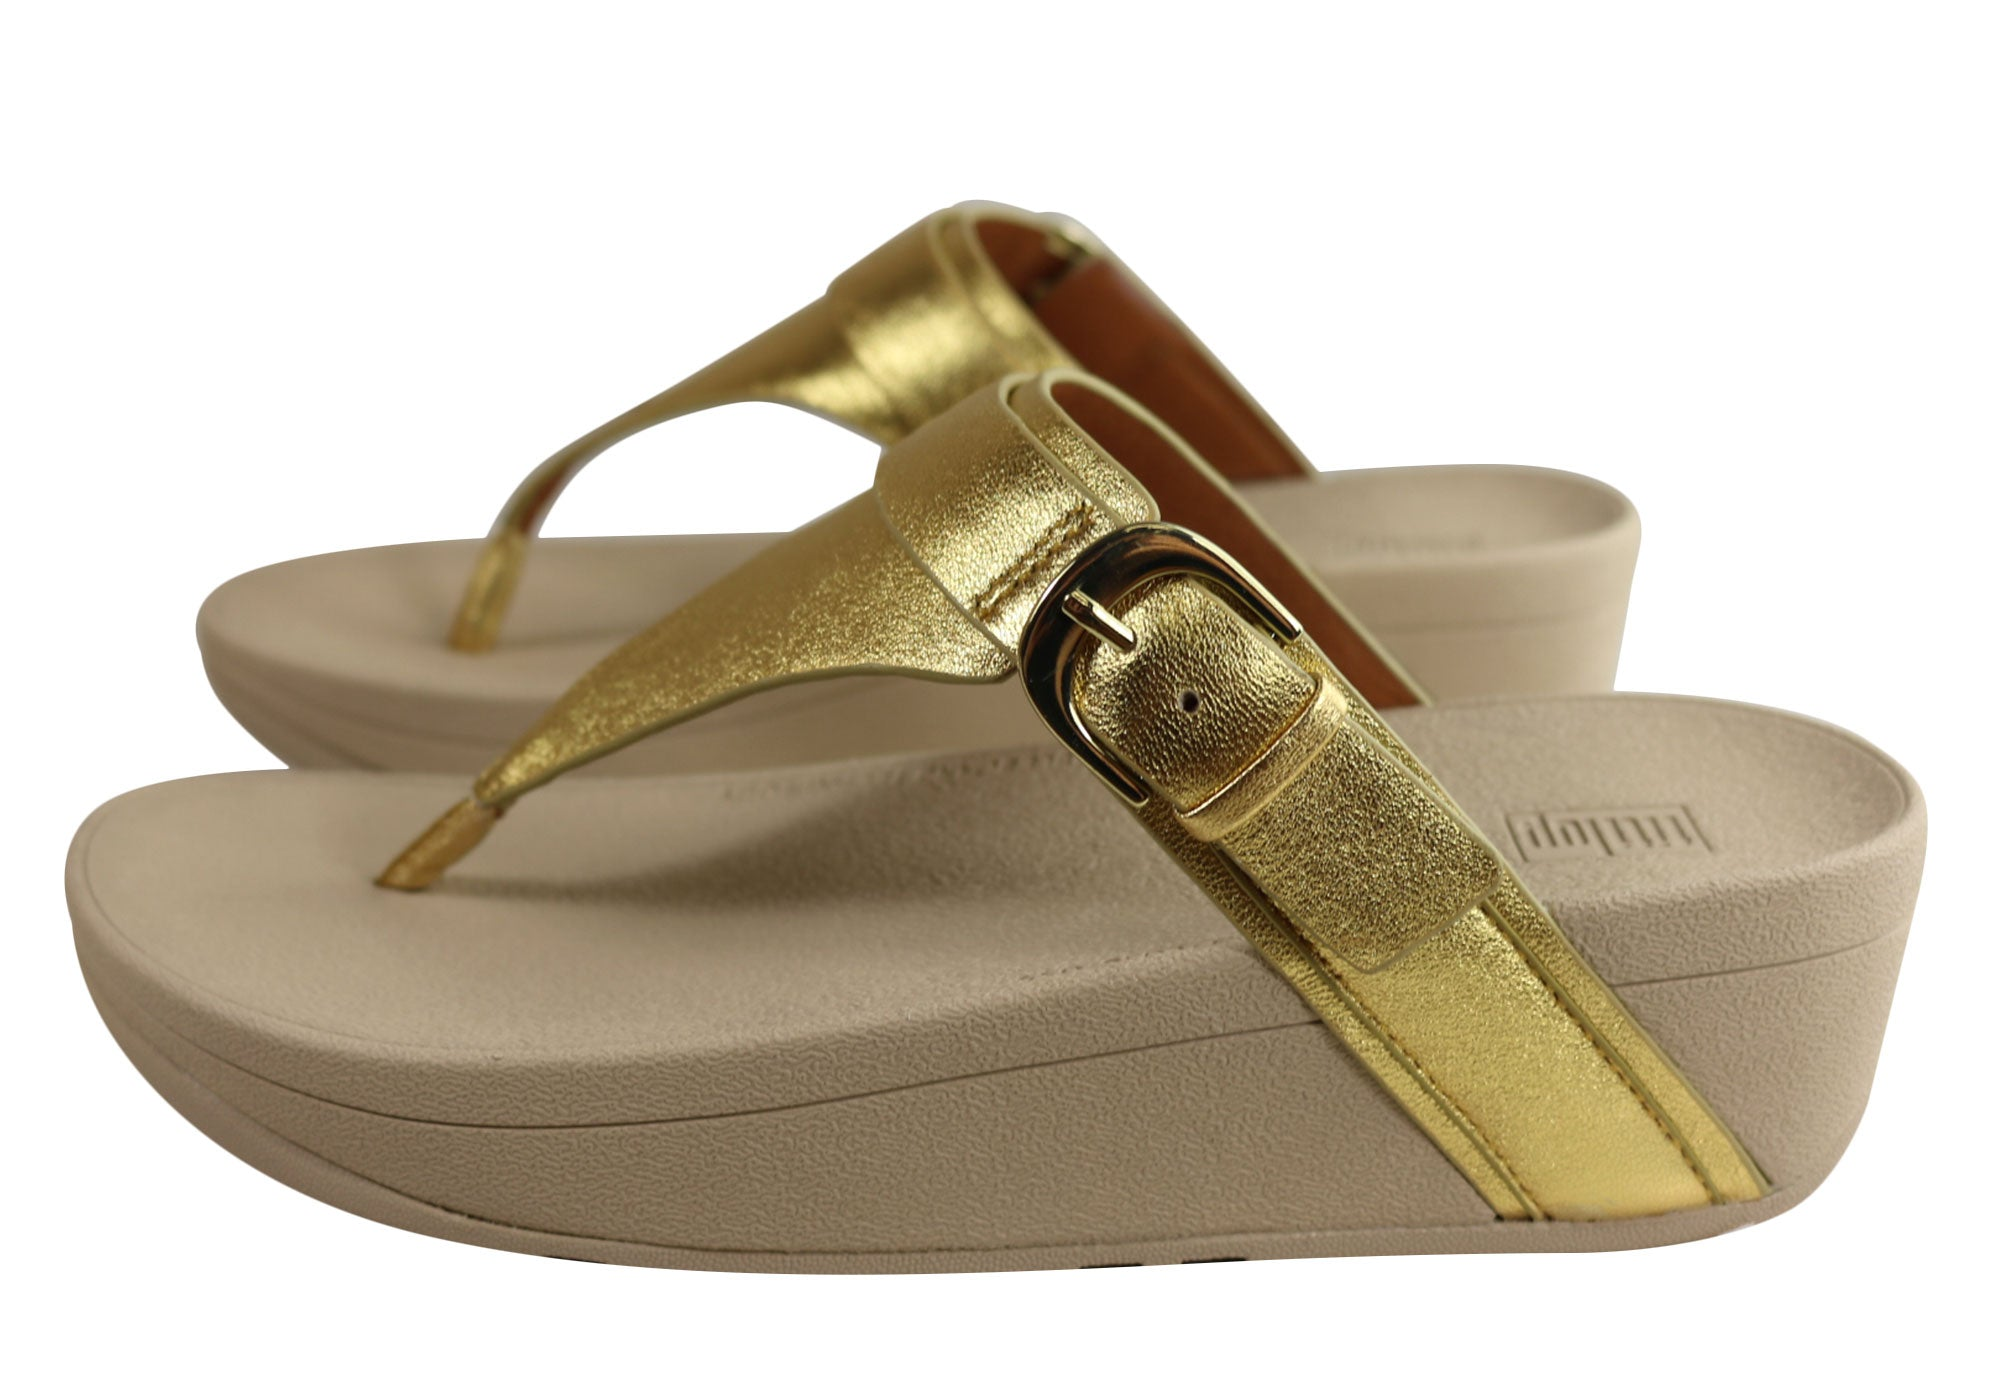 Fitflop Womens Comfortable Leather Edit Artisan Gold Thongs Sandals